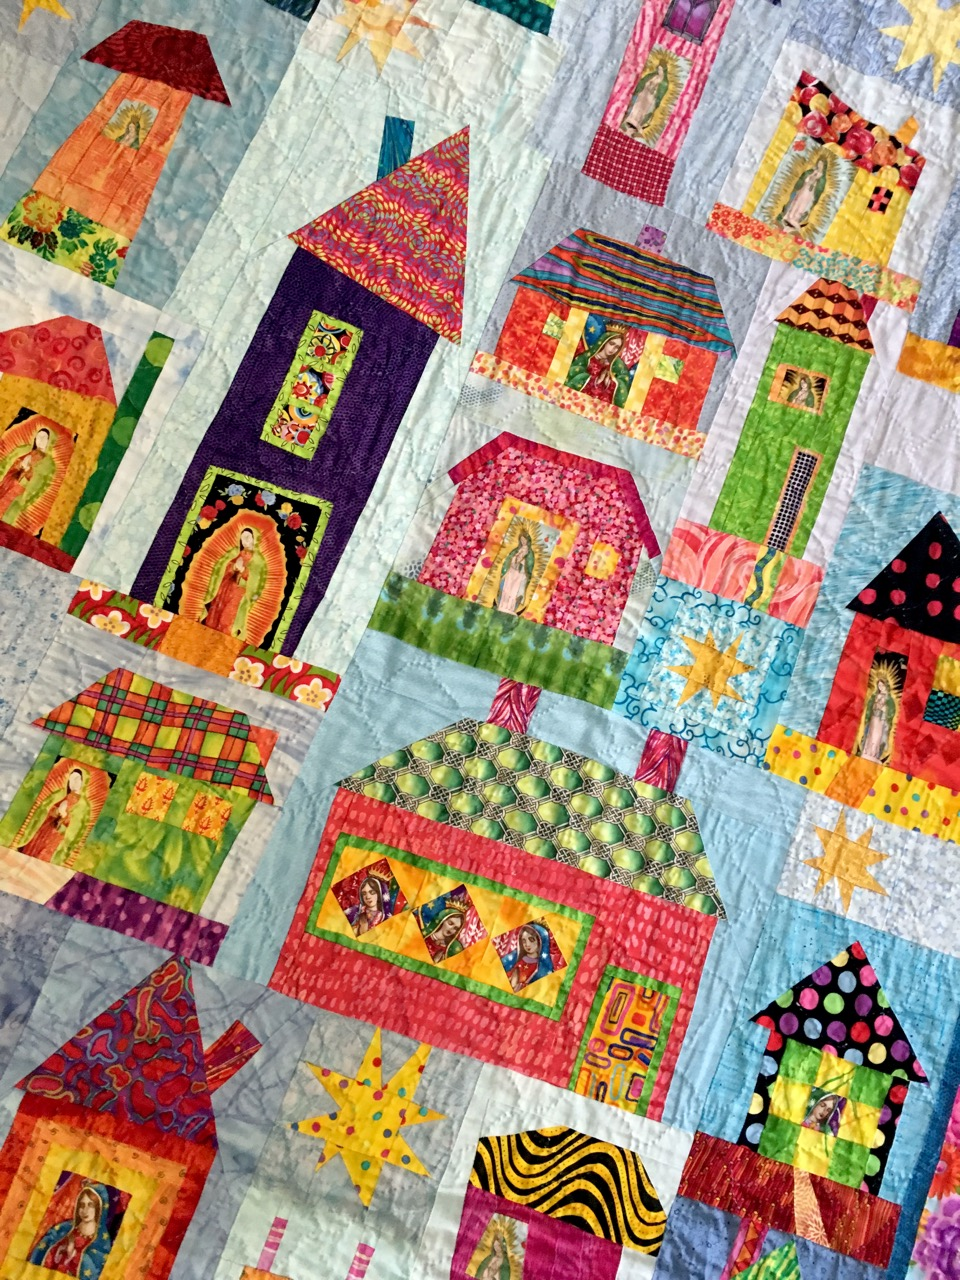 Samples of Debbie's quilts, you will be making your own original quilt, not necessarily one of quilts shown in the photographs.